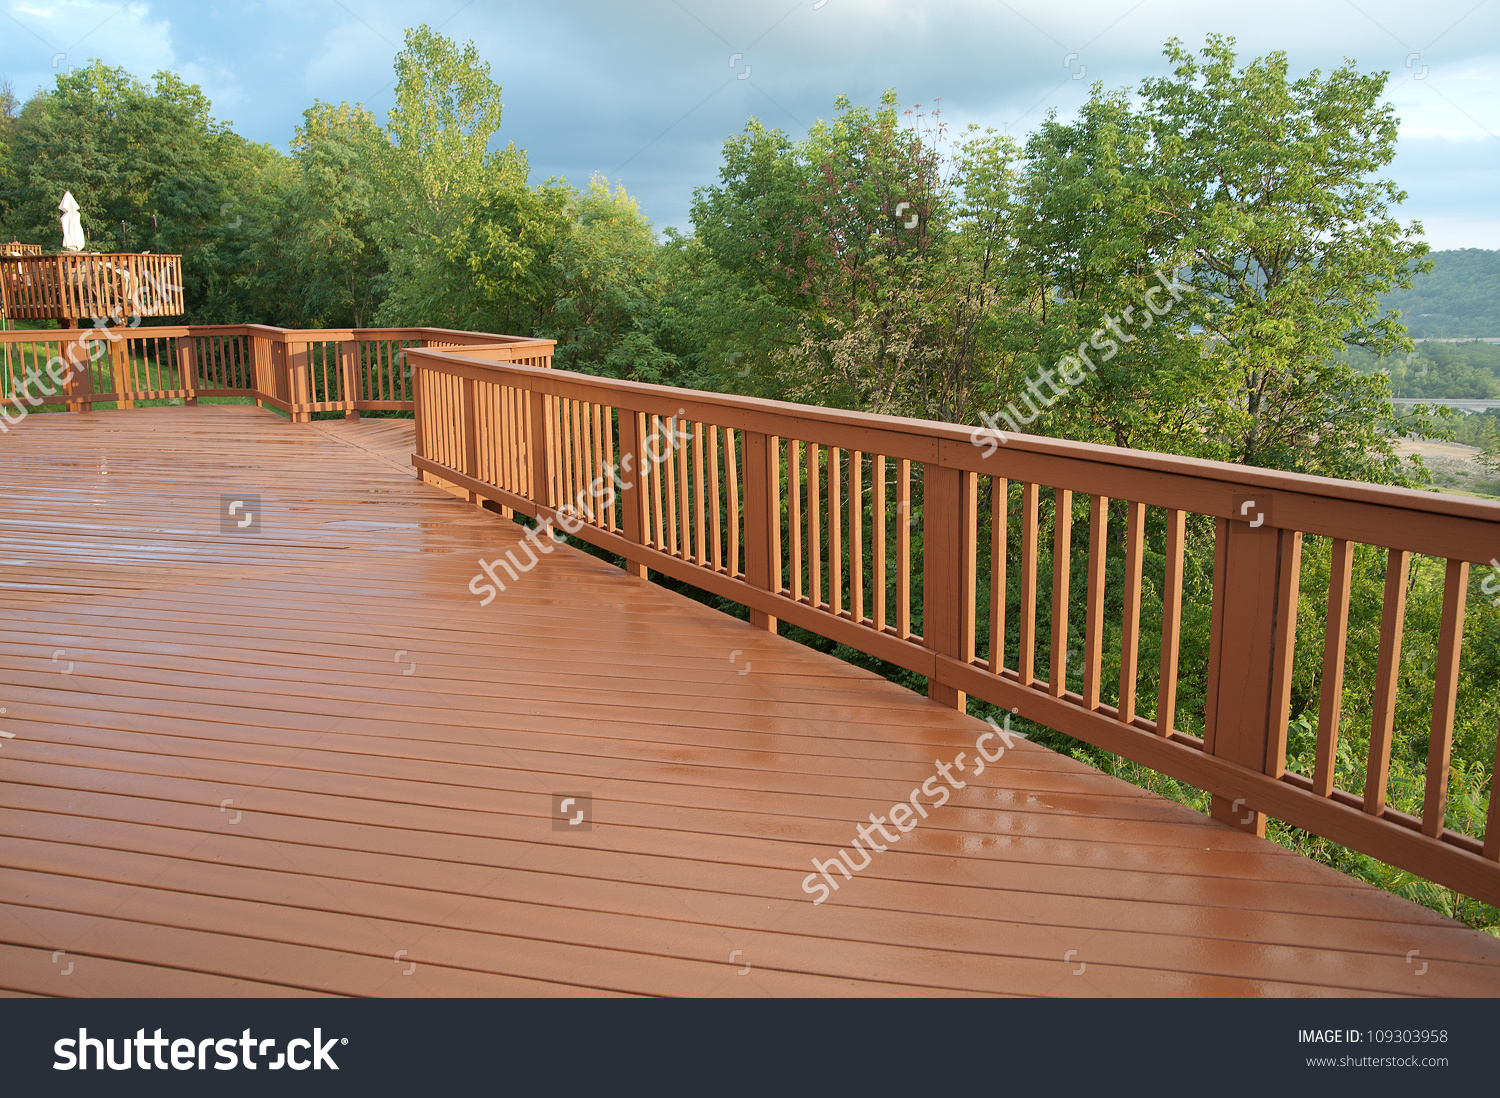 Freshly Painted Stained Wood Deck Railing Stock Photo 109303958.